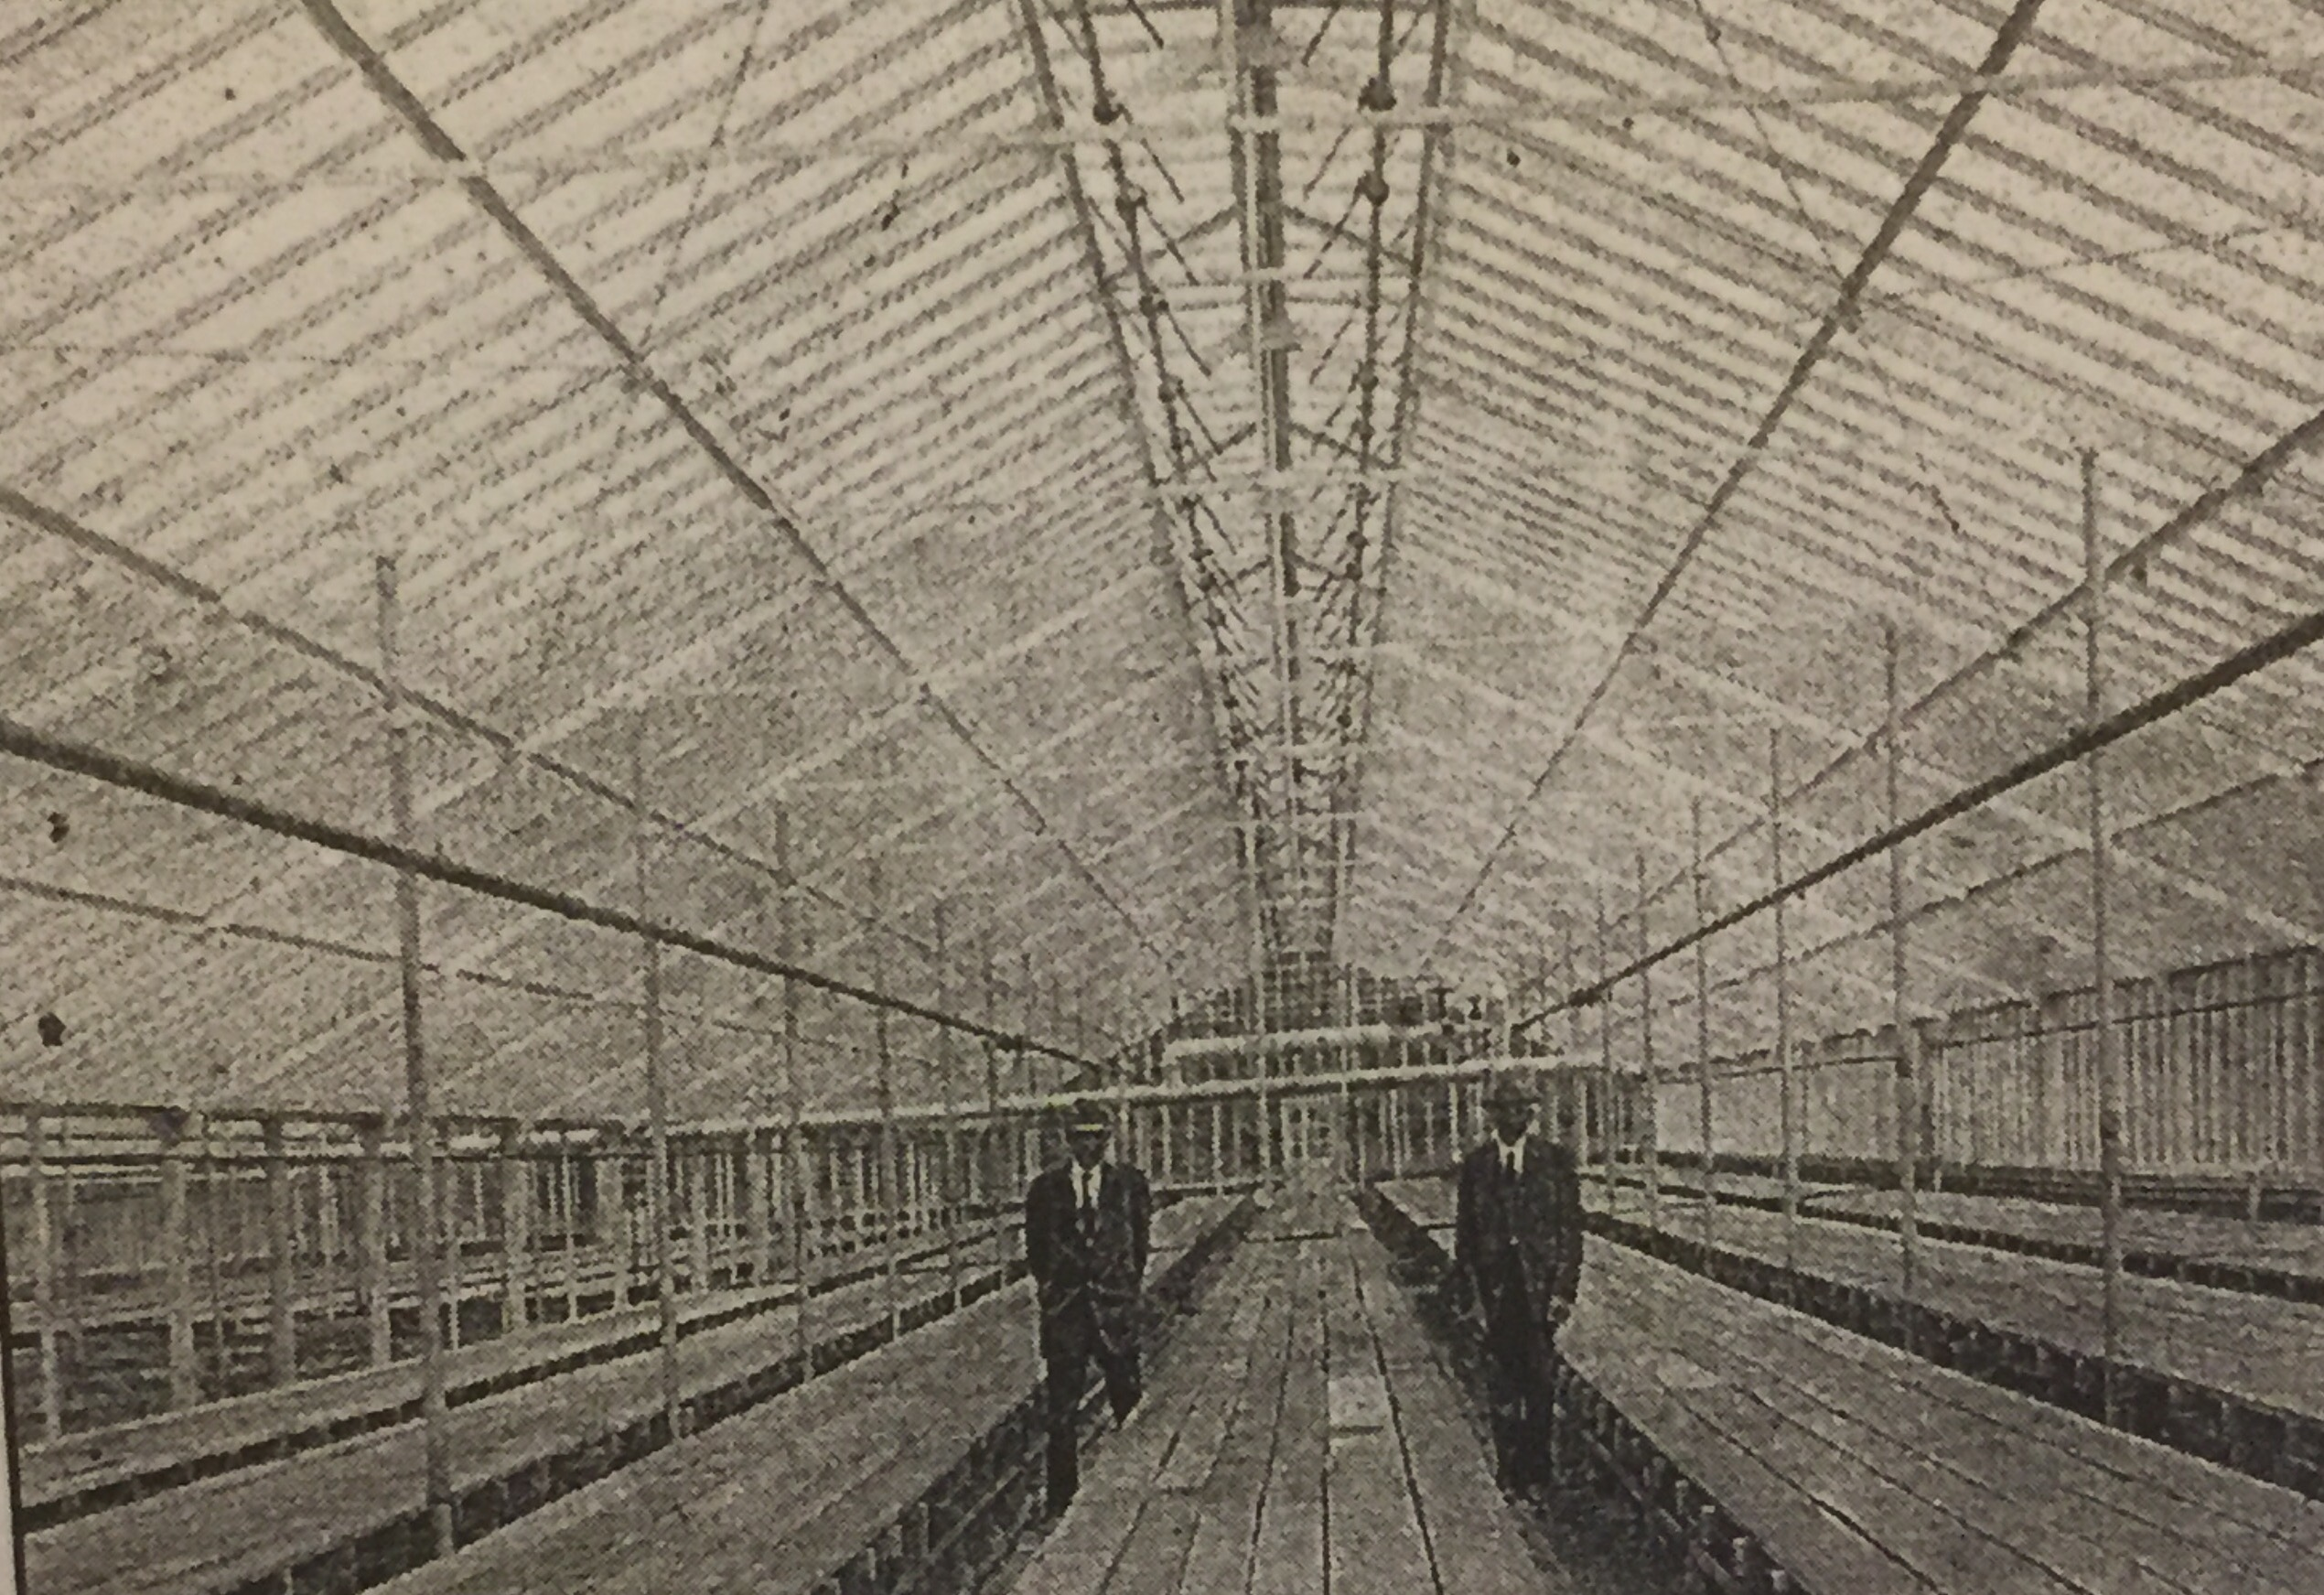 Joseph and Frank Weber in the Ironton greenhouse